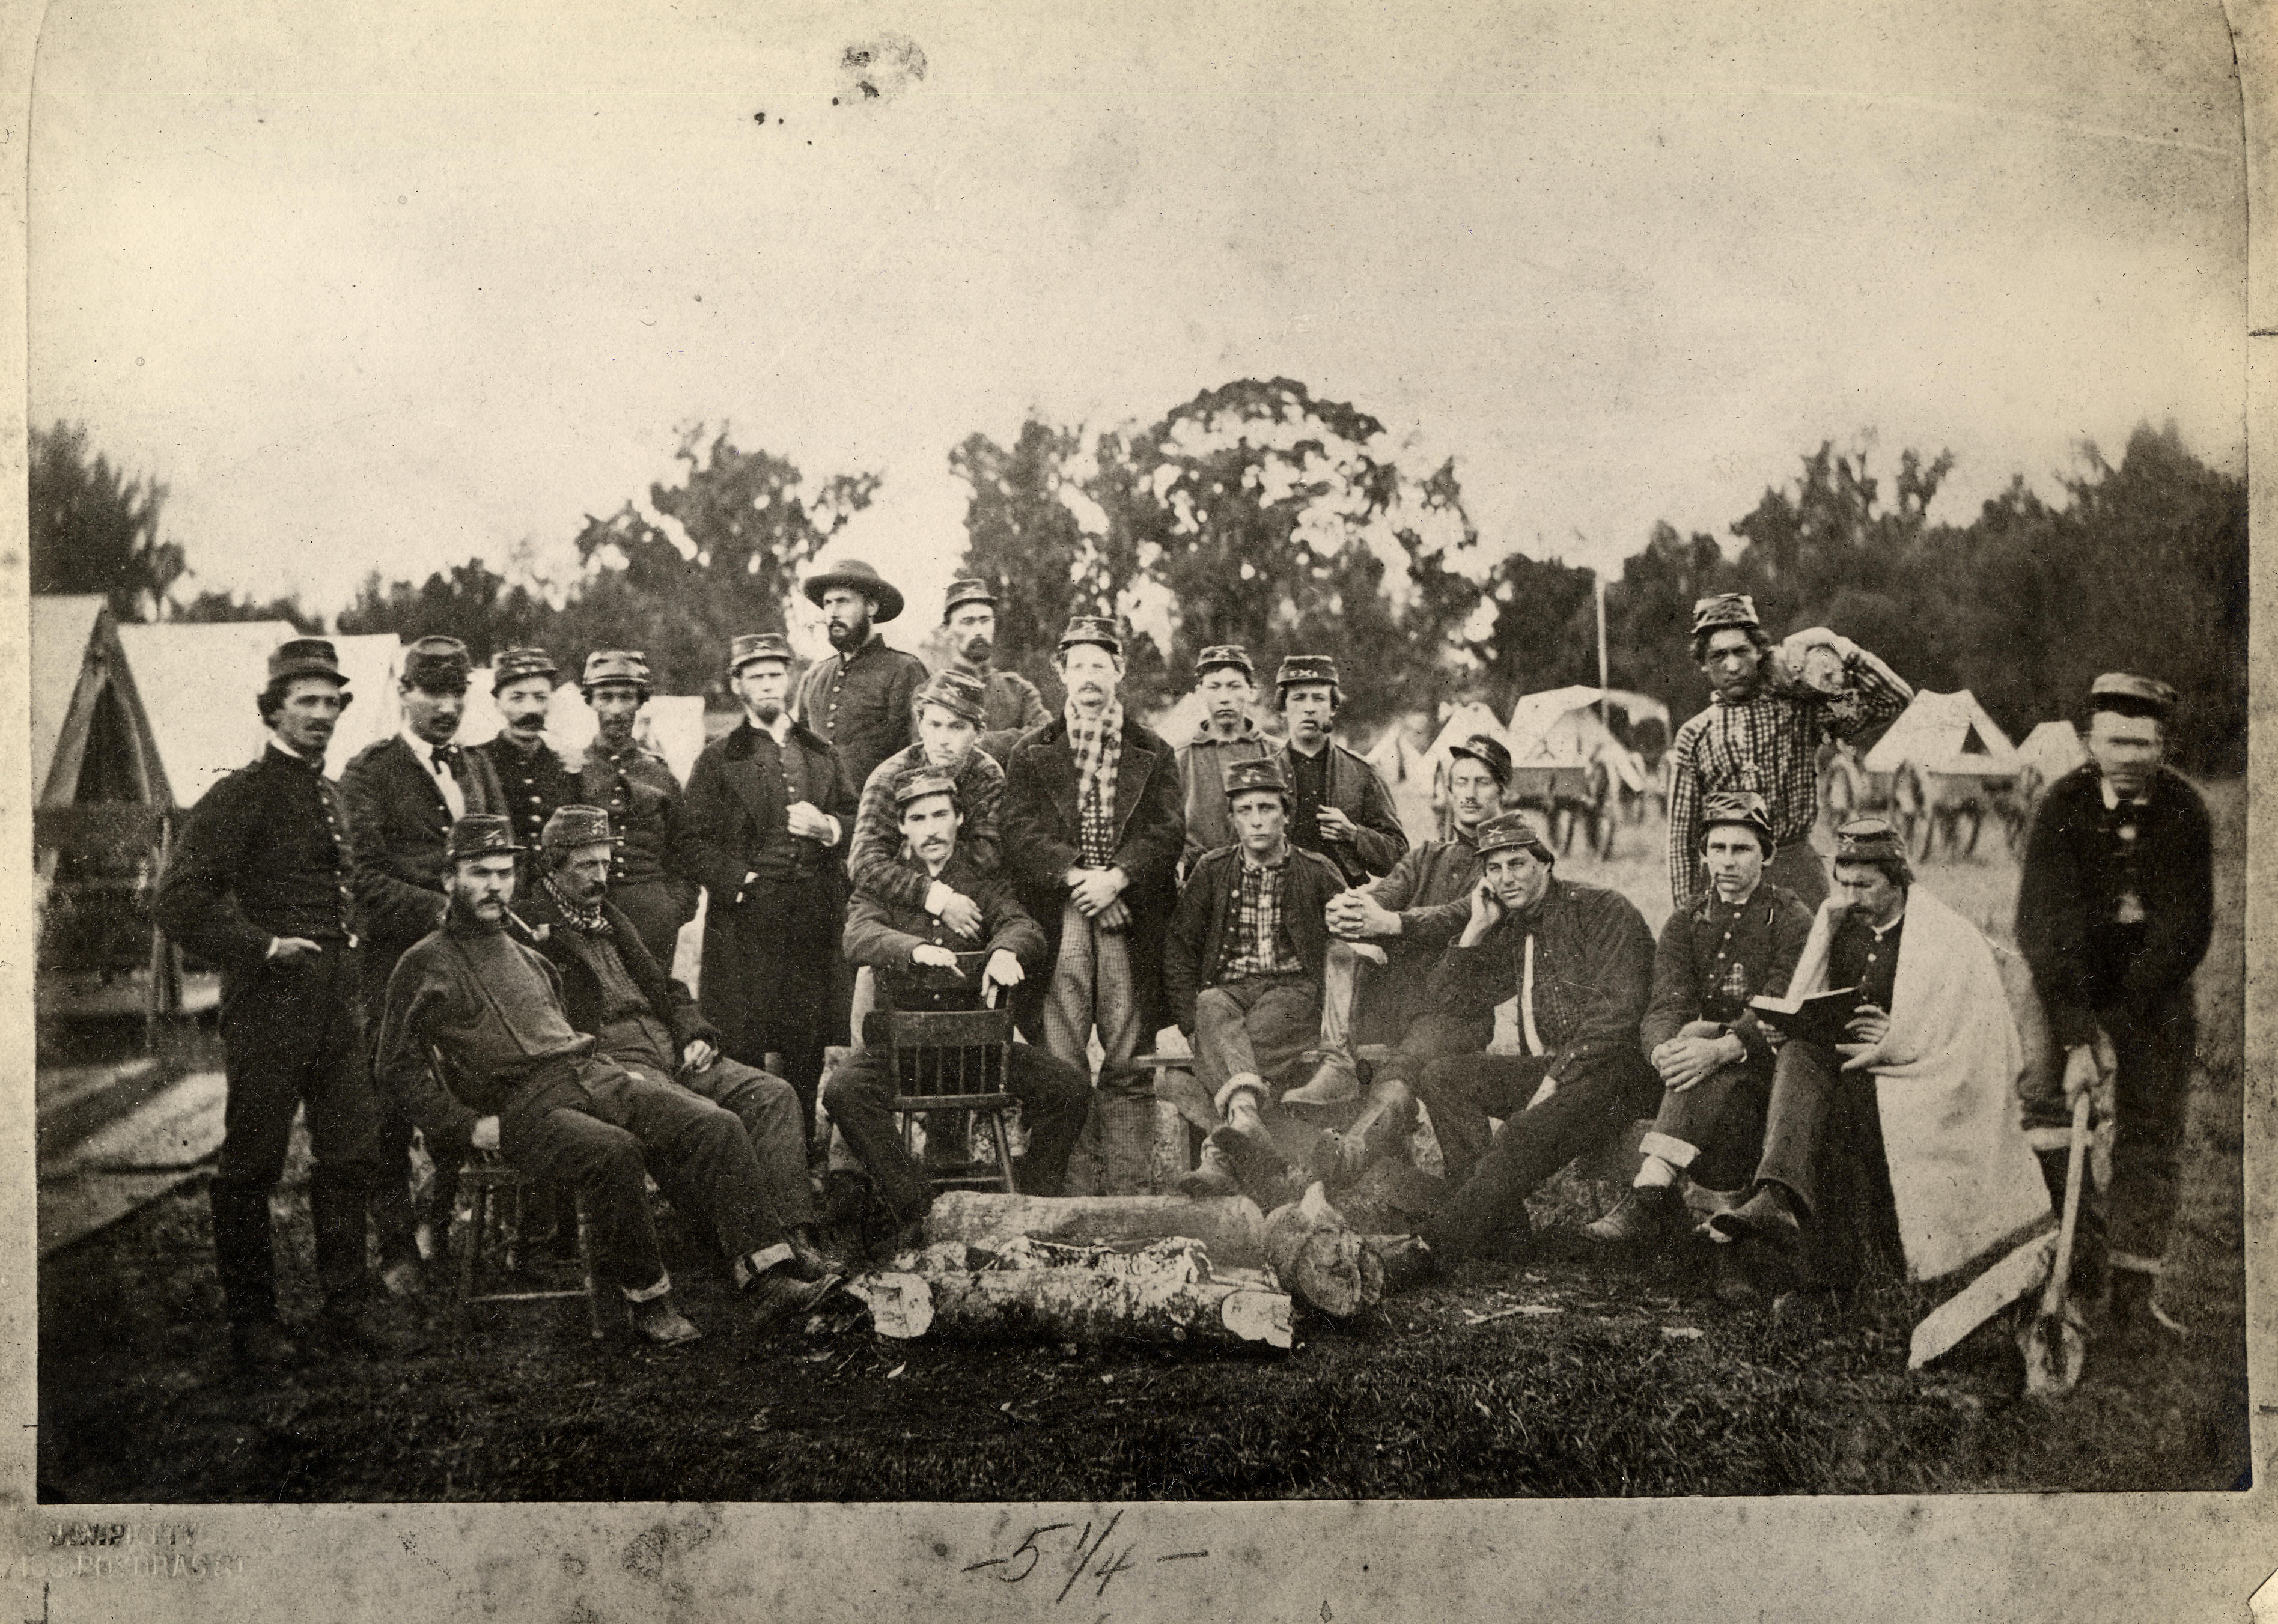 Battalion Washington Artillery Roster of known Images during the